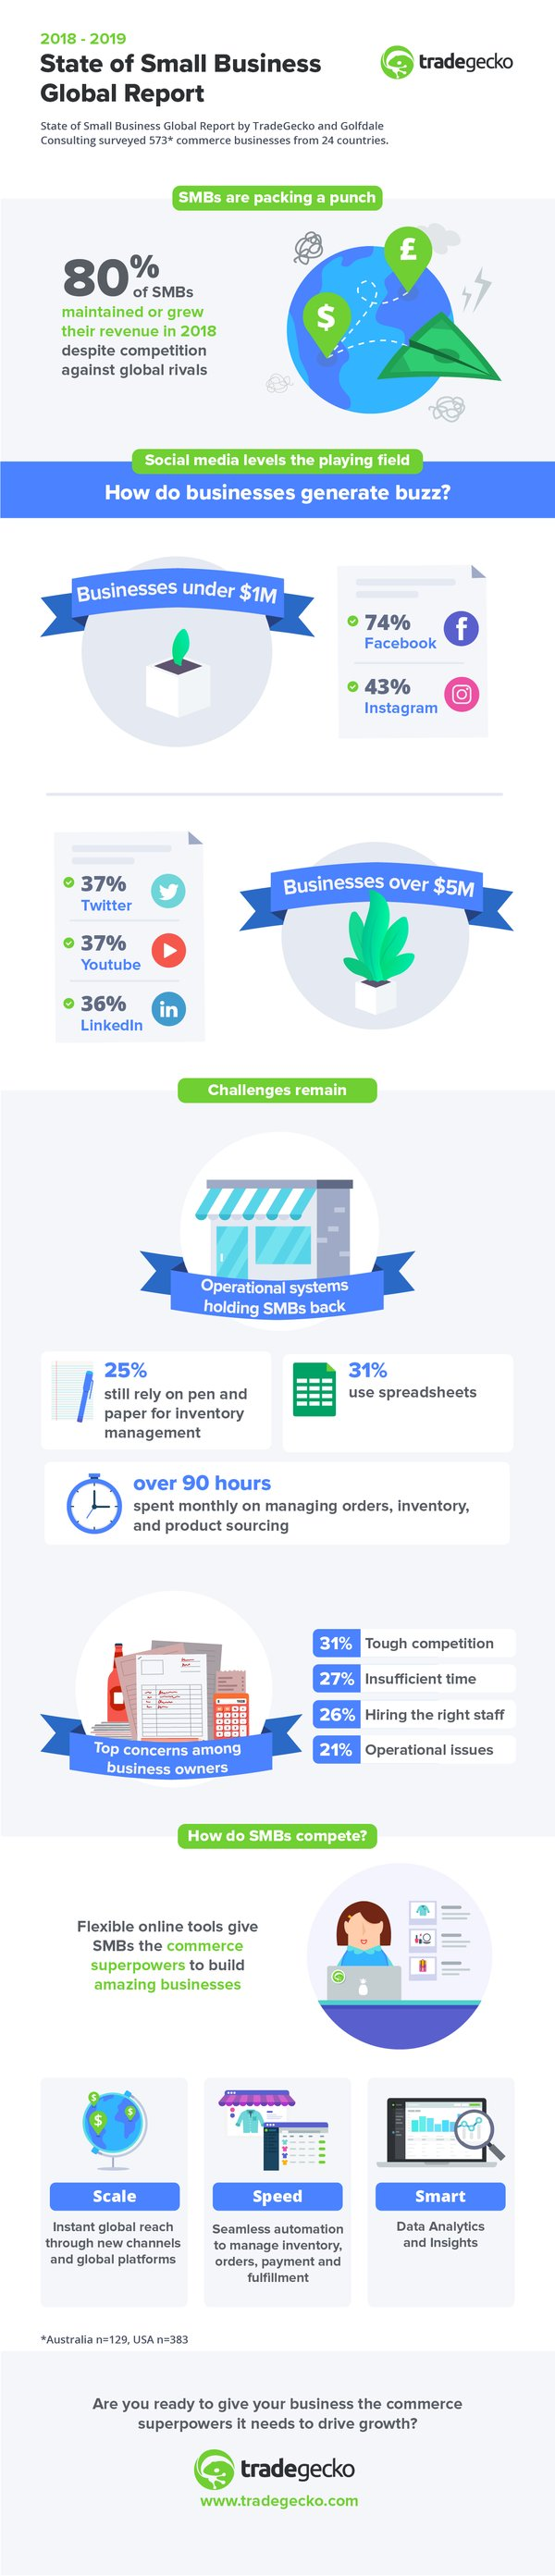 TradeGecko State of Small Business Infographic